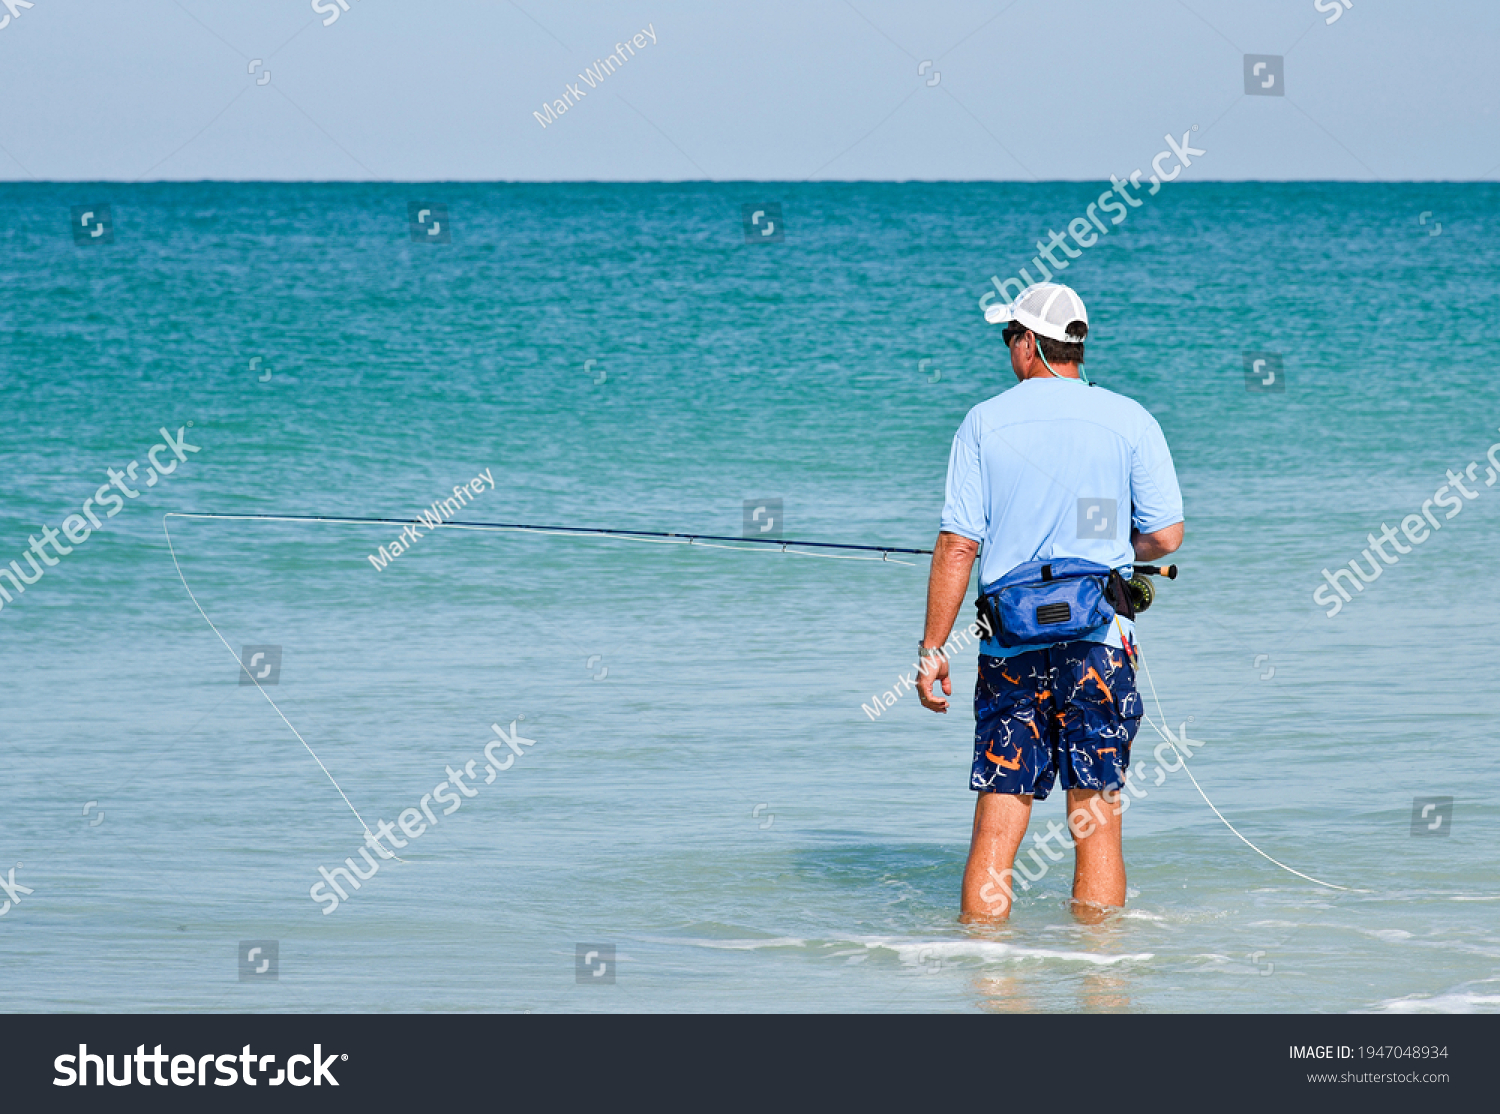 An Unidentified Man Wading in the shallow water of the Gulf of Mexico Fly Fishing on a Beautiful Summer Day.